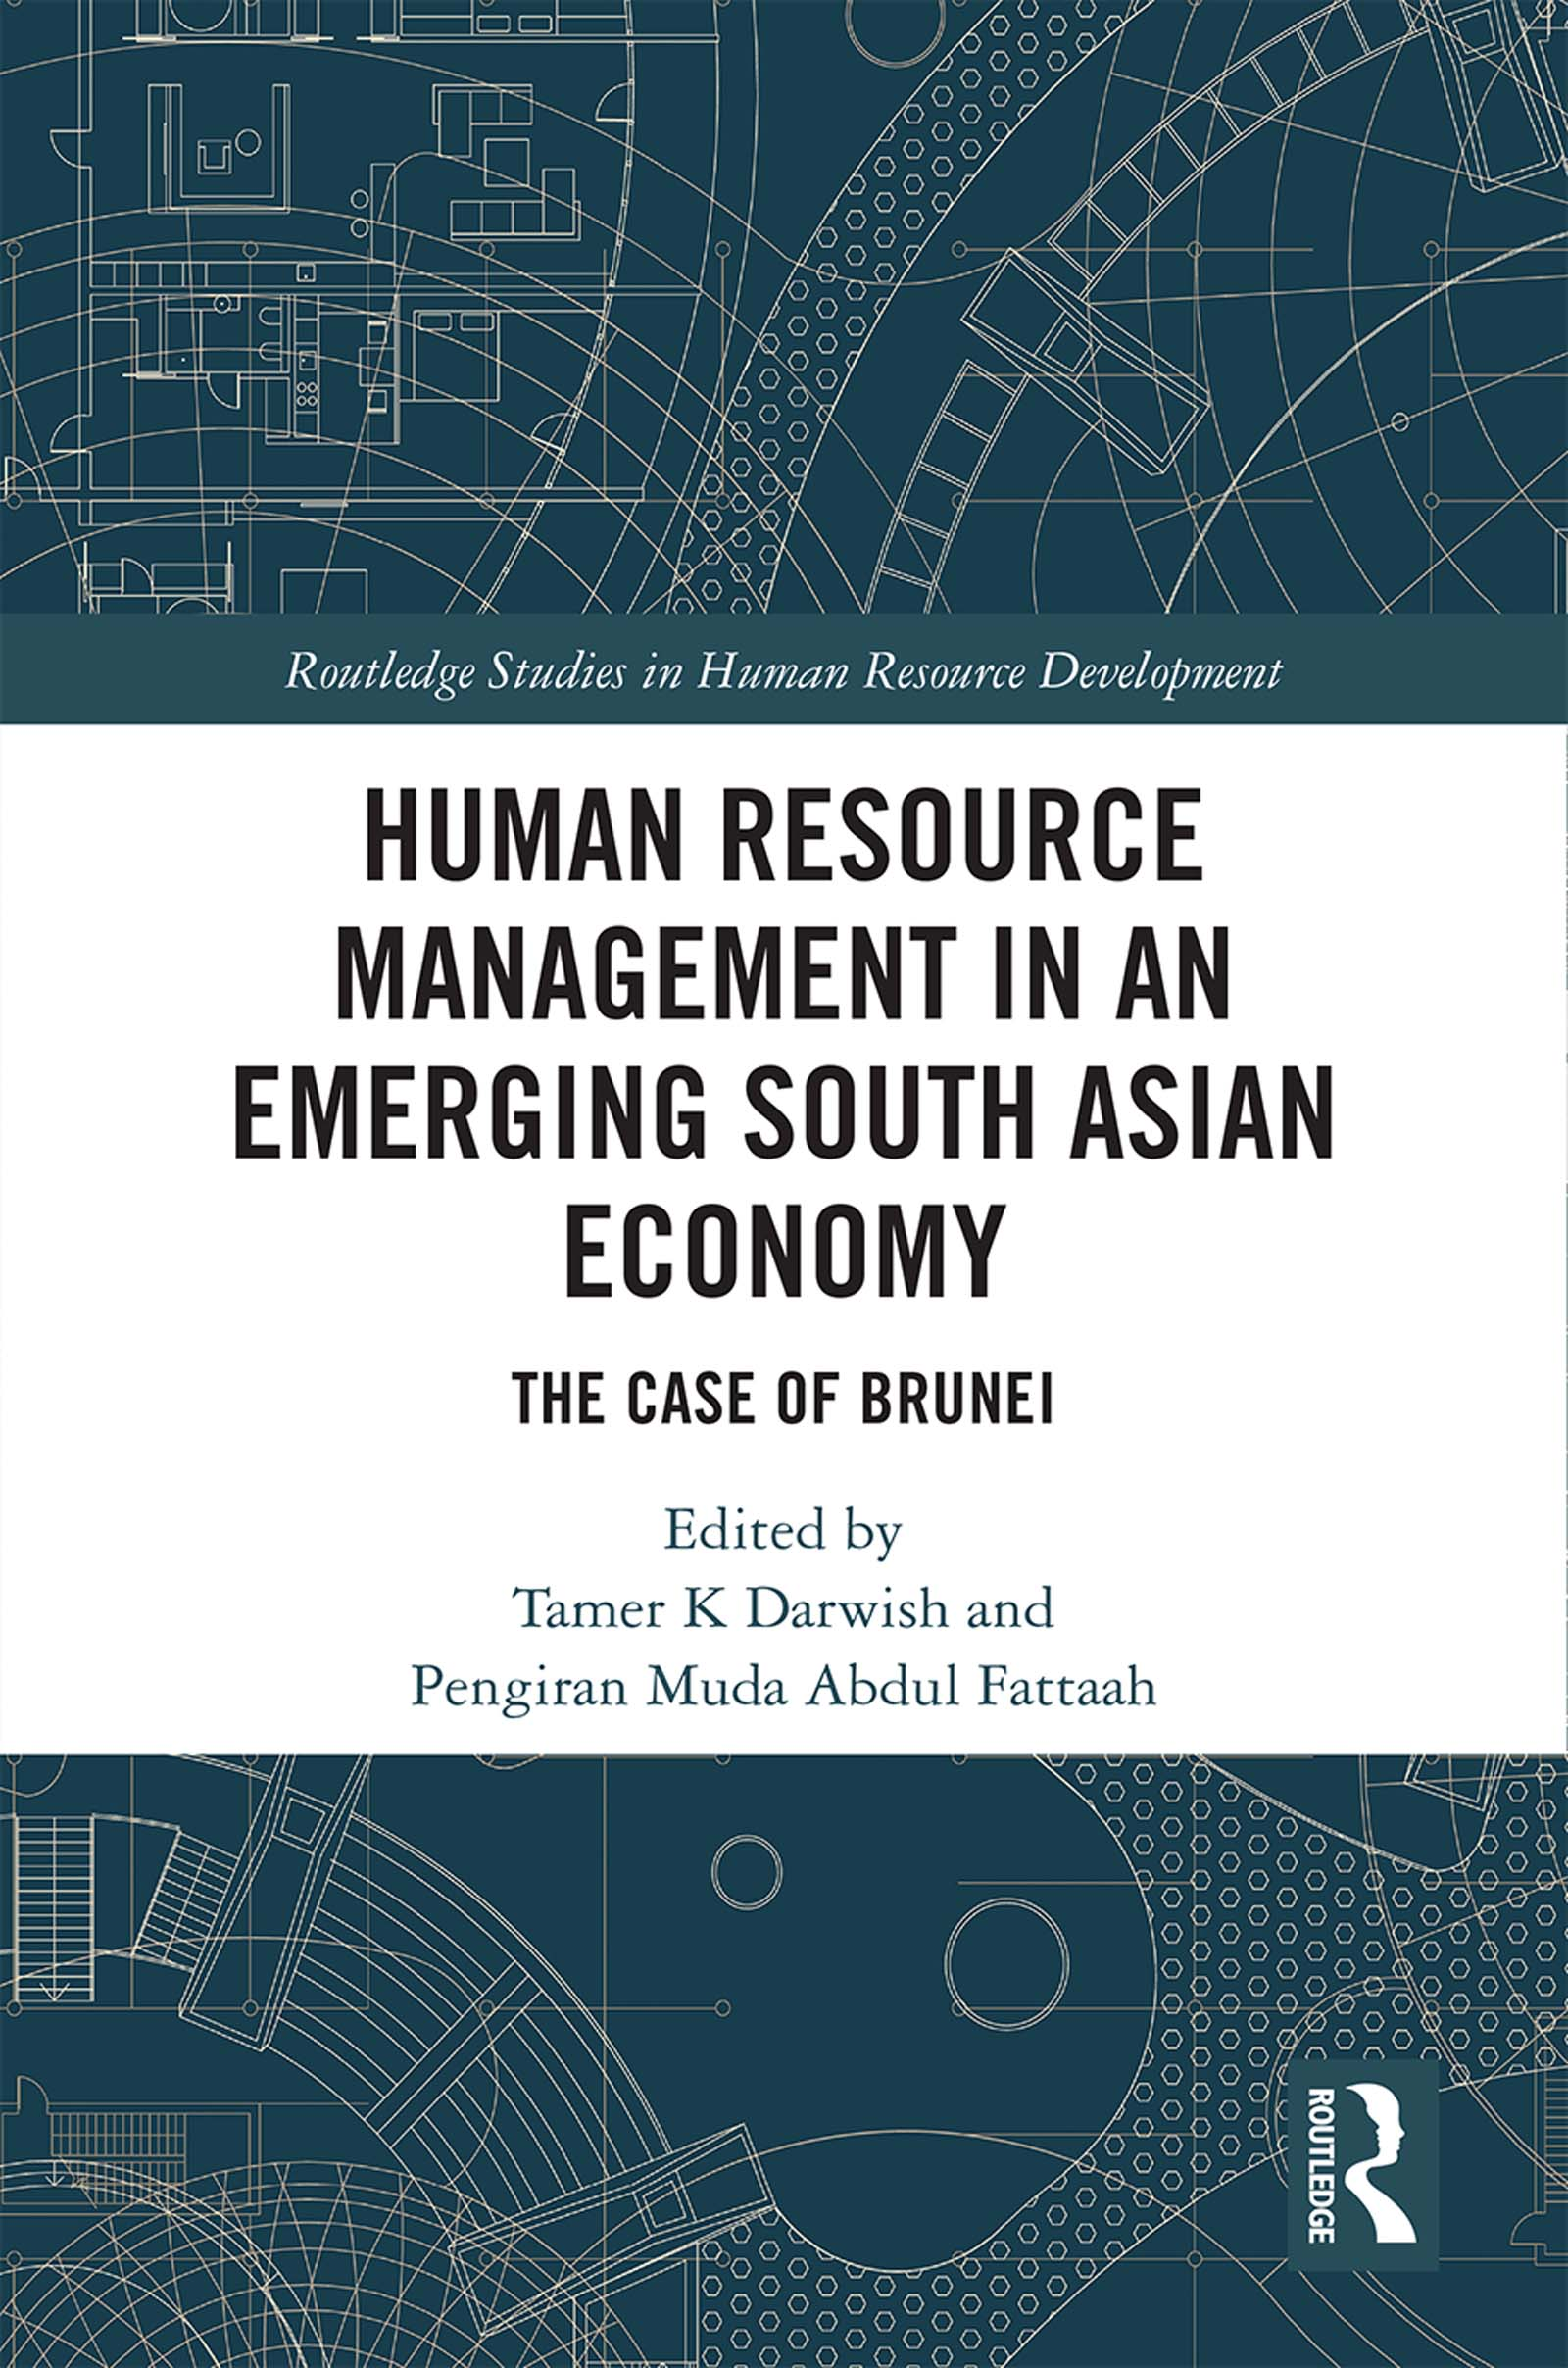 Human Resource Management in an Emerging South Asian Economy: The Case of Brunei, 1st Edition (Hardback) book cover